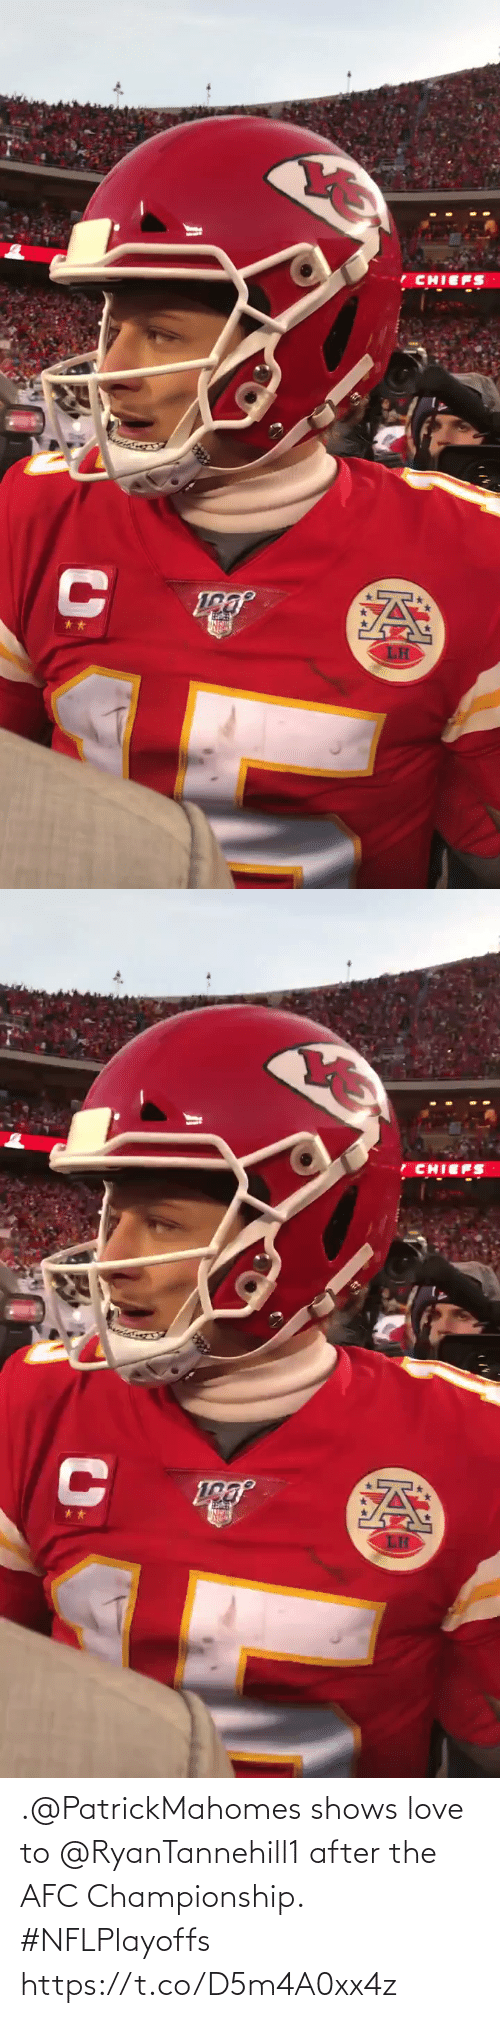 After The: .@PatrickMahomes shows love to @RyanTannehill1 after the AFC Championship. #NFLPlayoffs https://t.co/D5m4A0xx4z